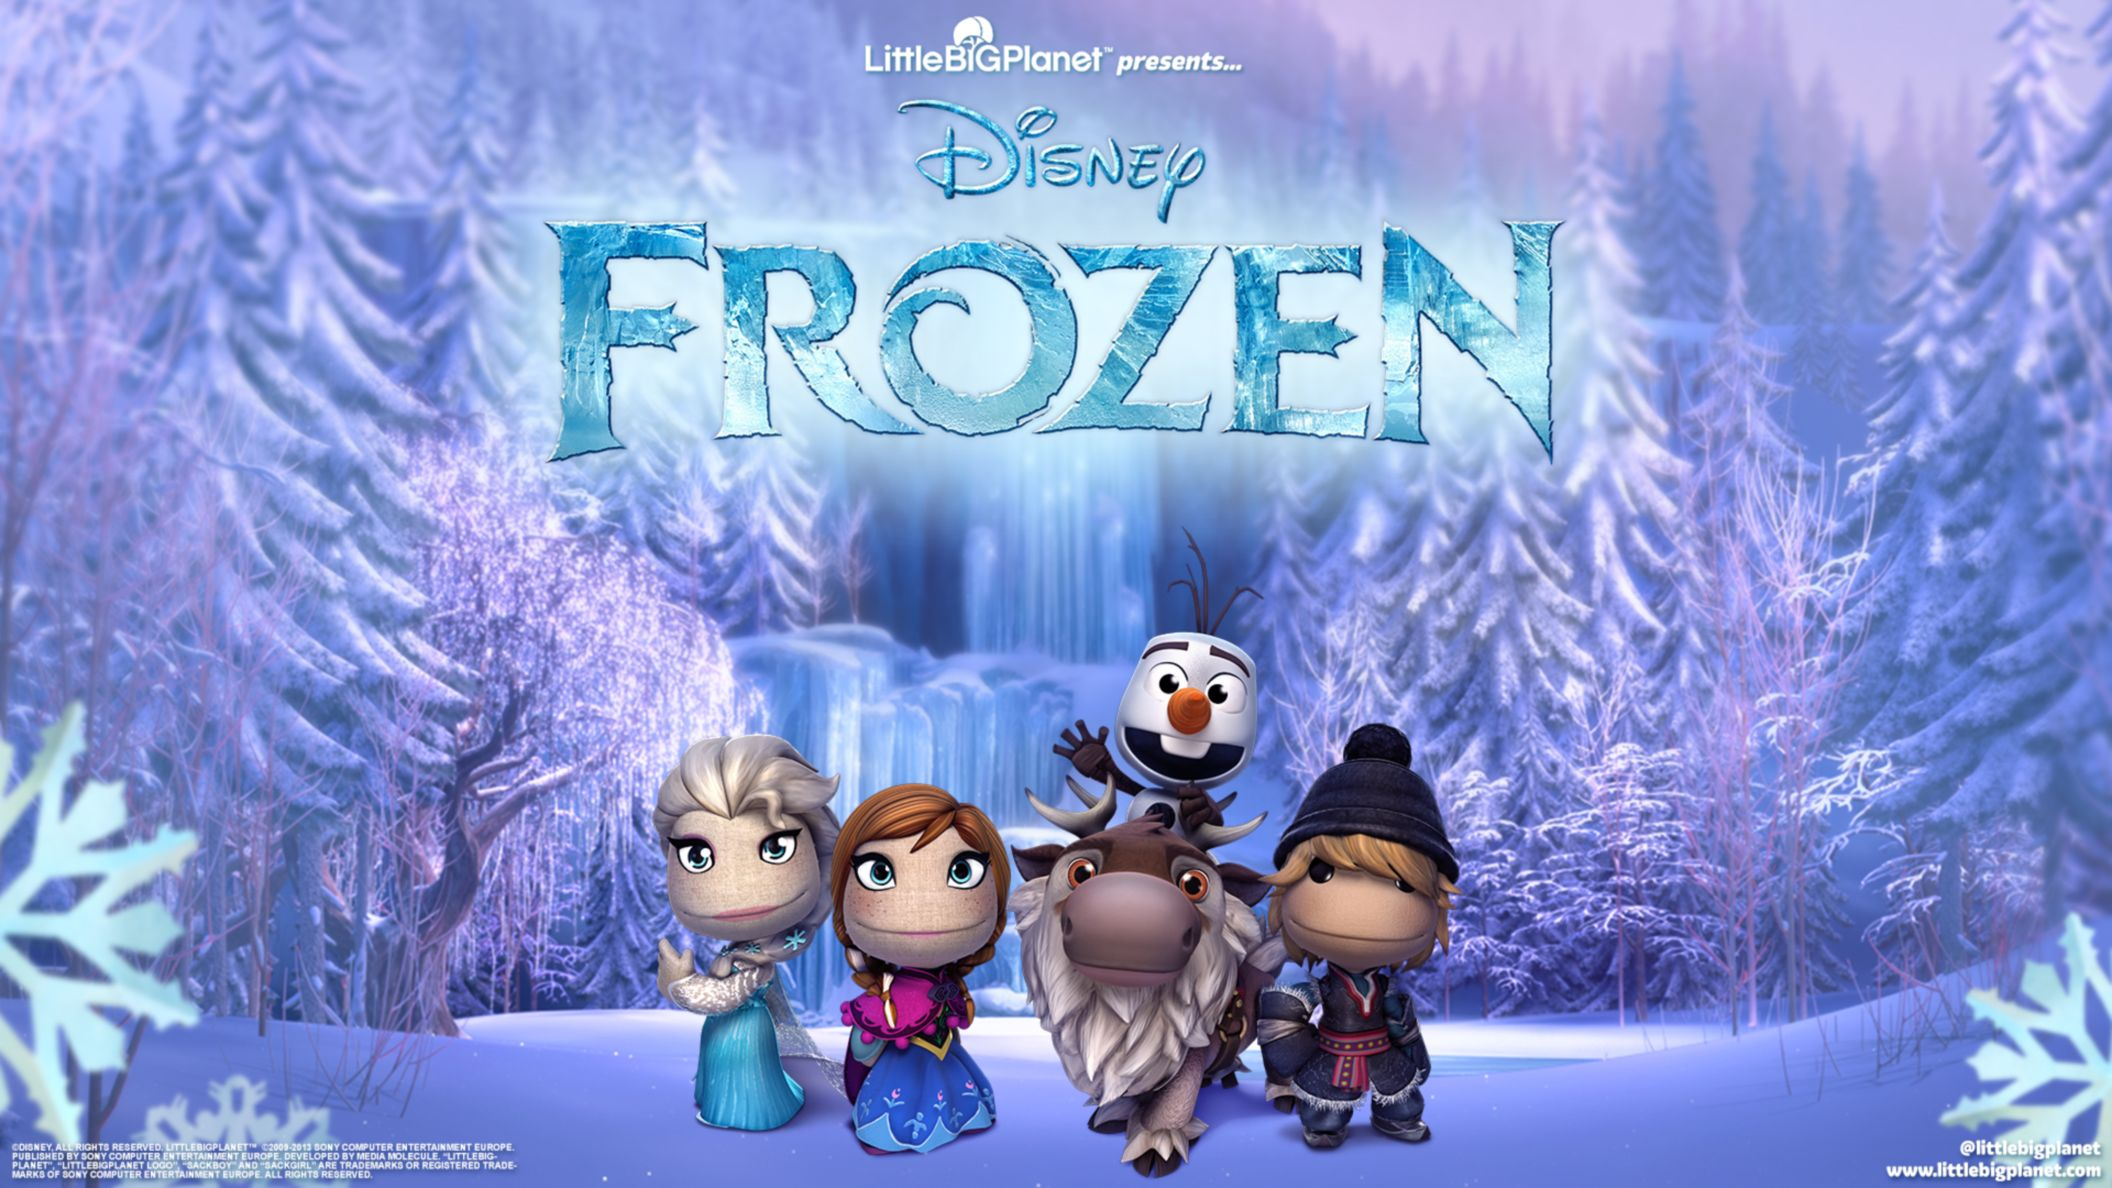 Download free HD Littlebigplanet 3frozen HD Wallpaper, image